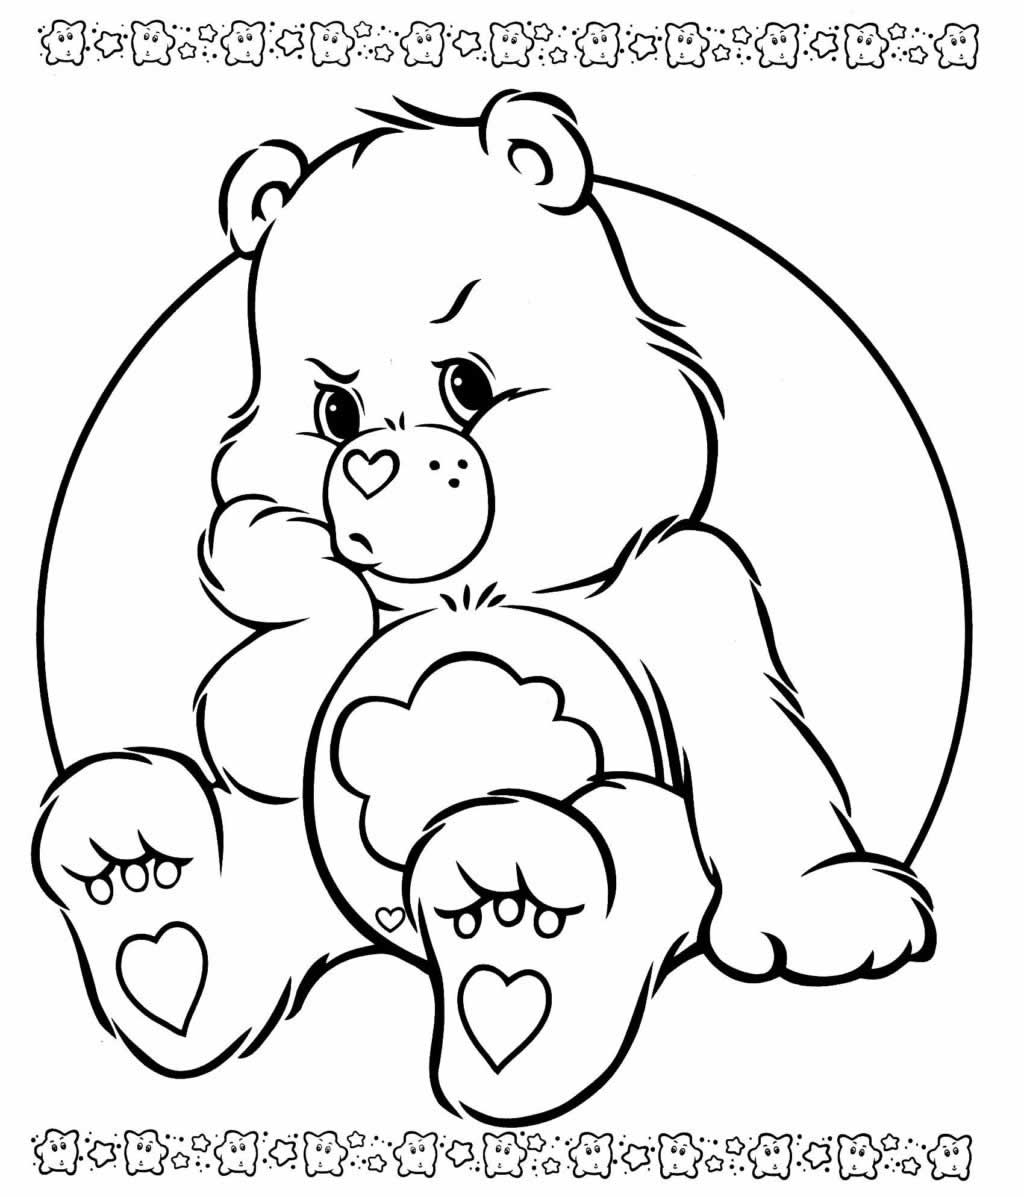 Care Bears drawing for printing and coloring